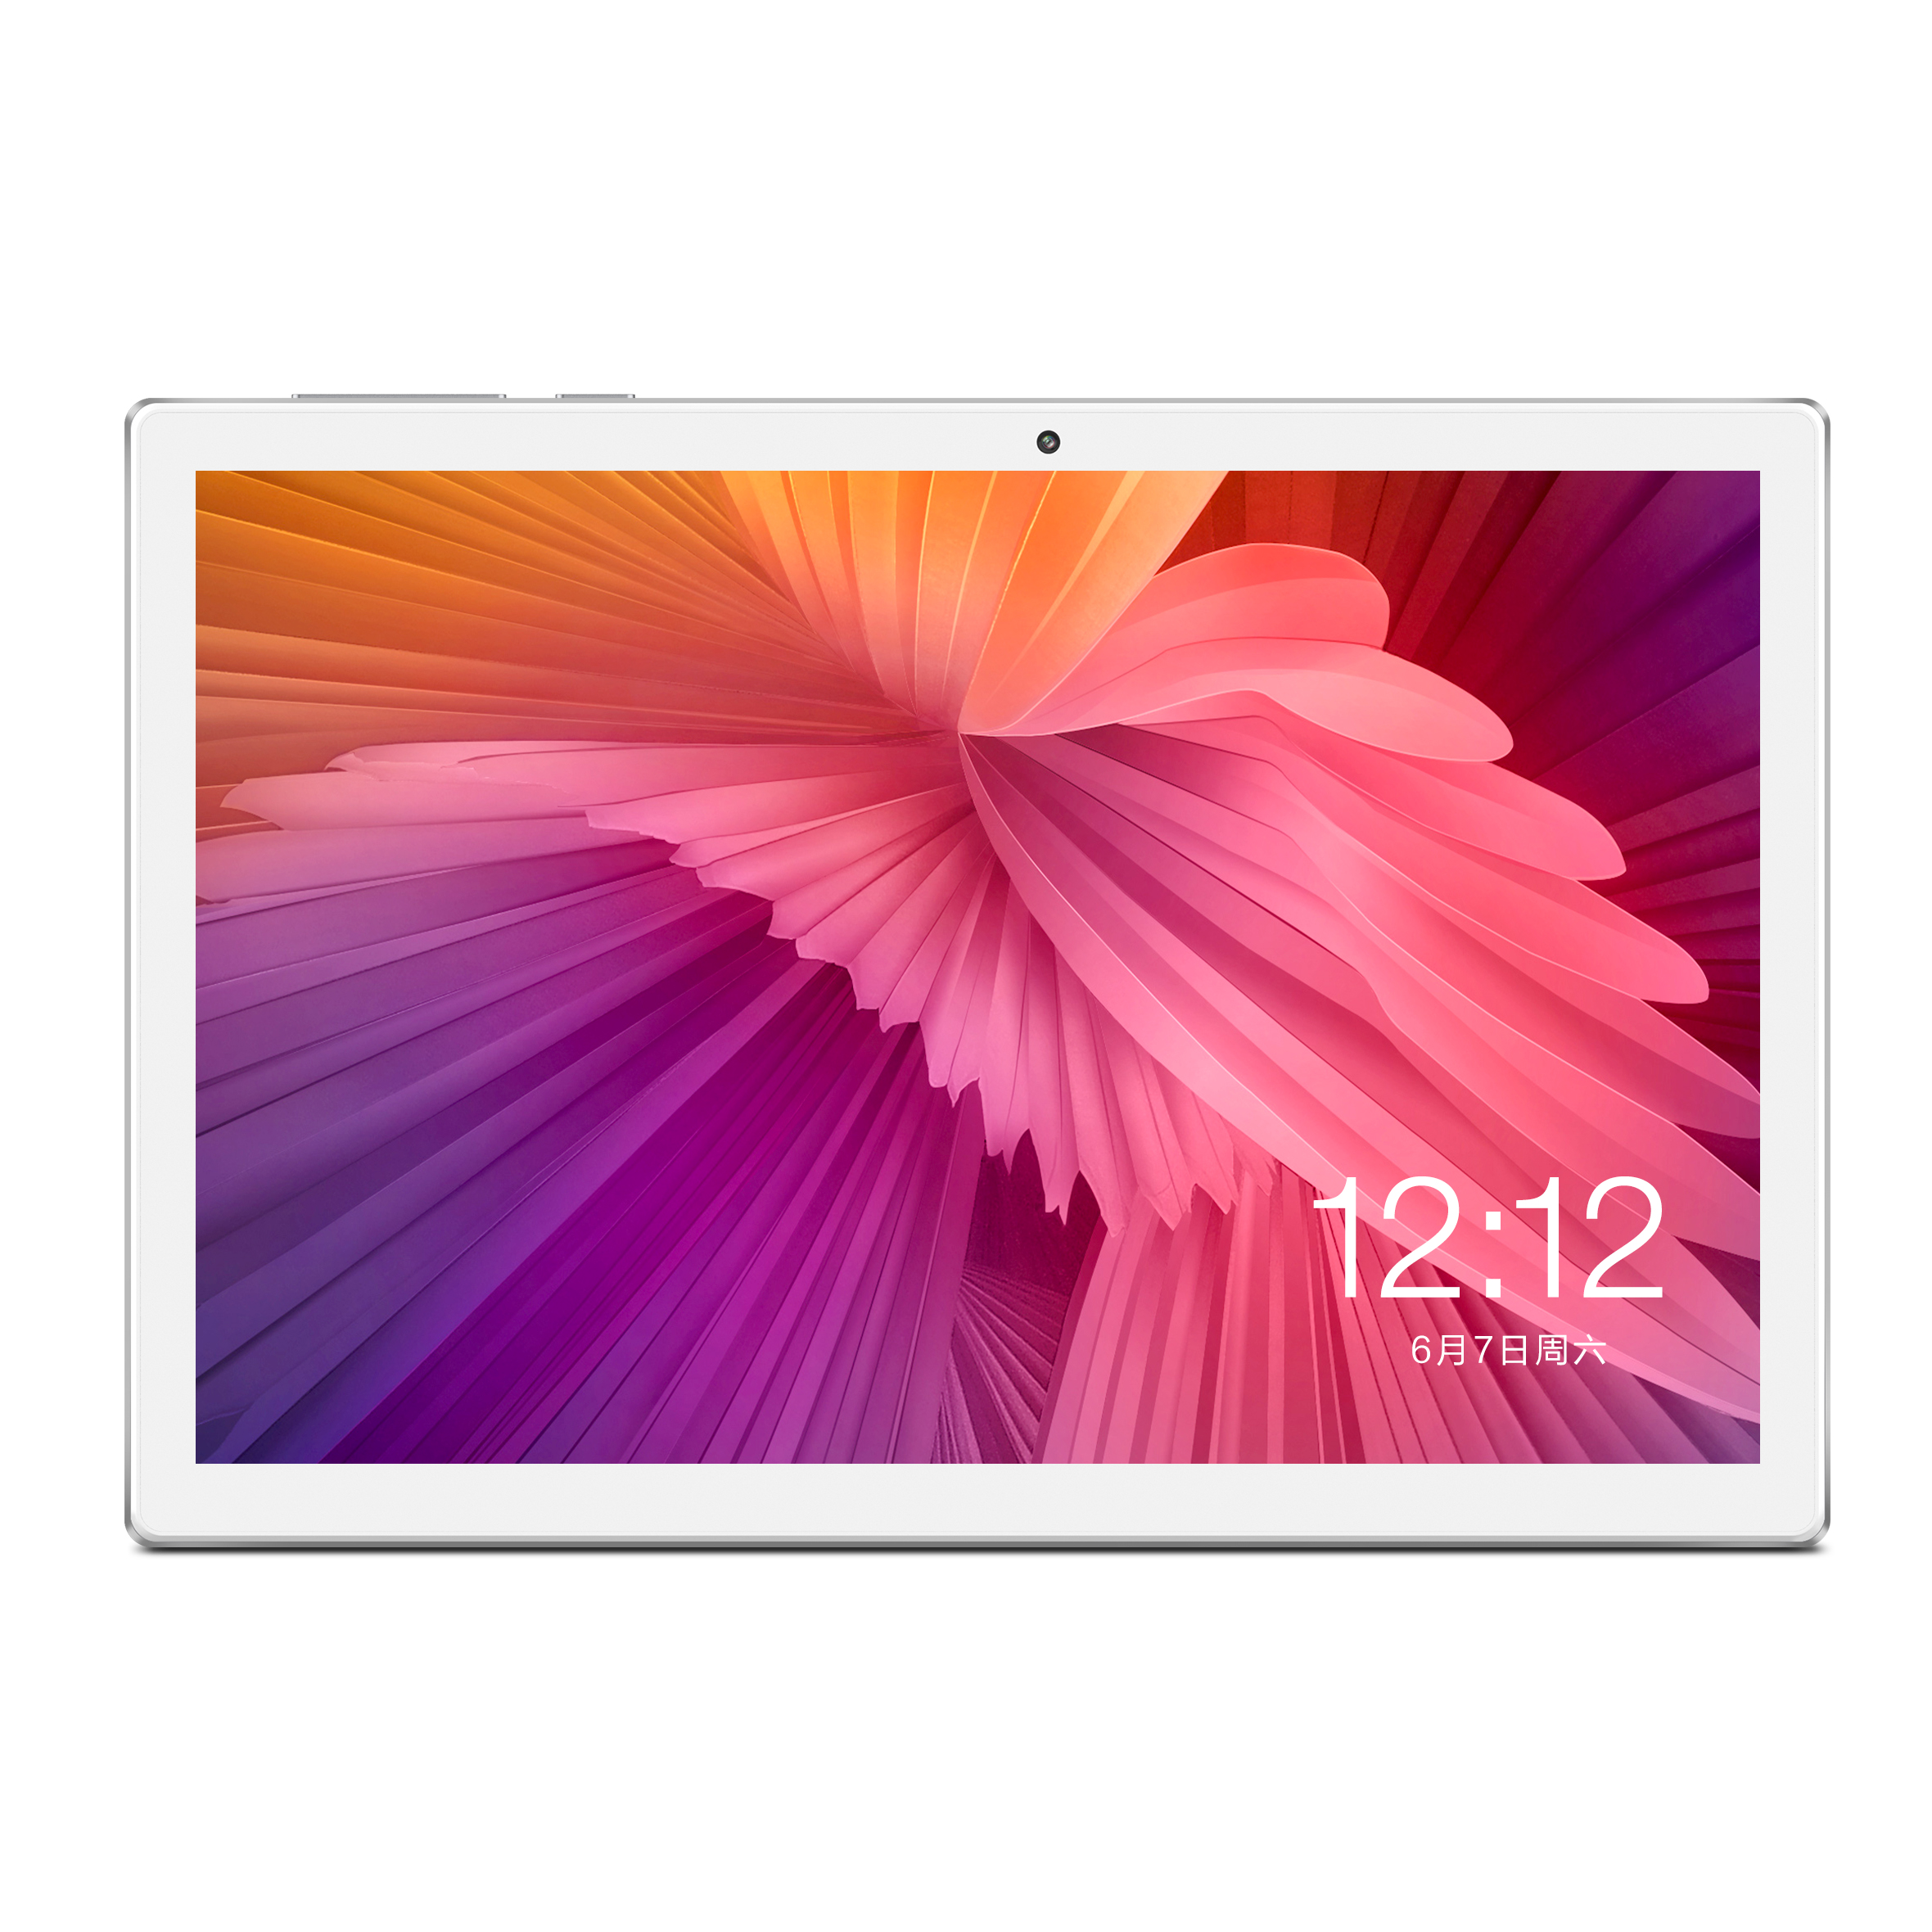 Image 4 - Teclast M30 10.1 Inch Android 8.0 MT6797X ( X27 ) 1.4GHz Decore CPU 3GB RAM 64GB ROM 5.0MP+2.0MP Type C 4G Phone Call Tablet PCTablets   -